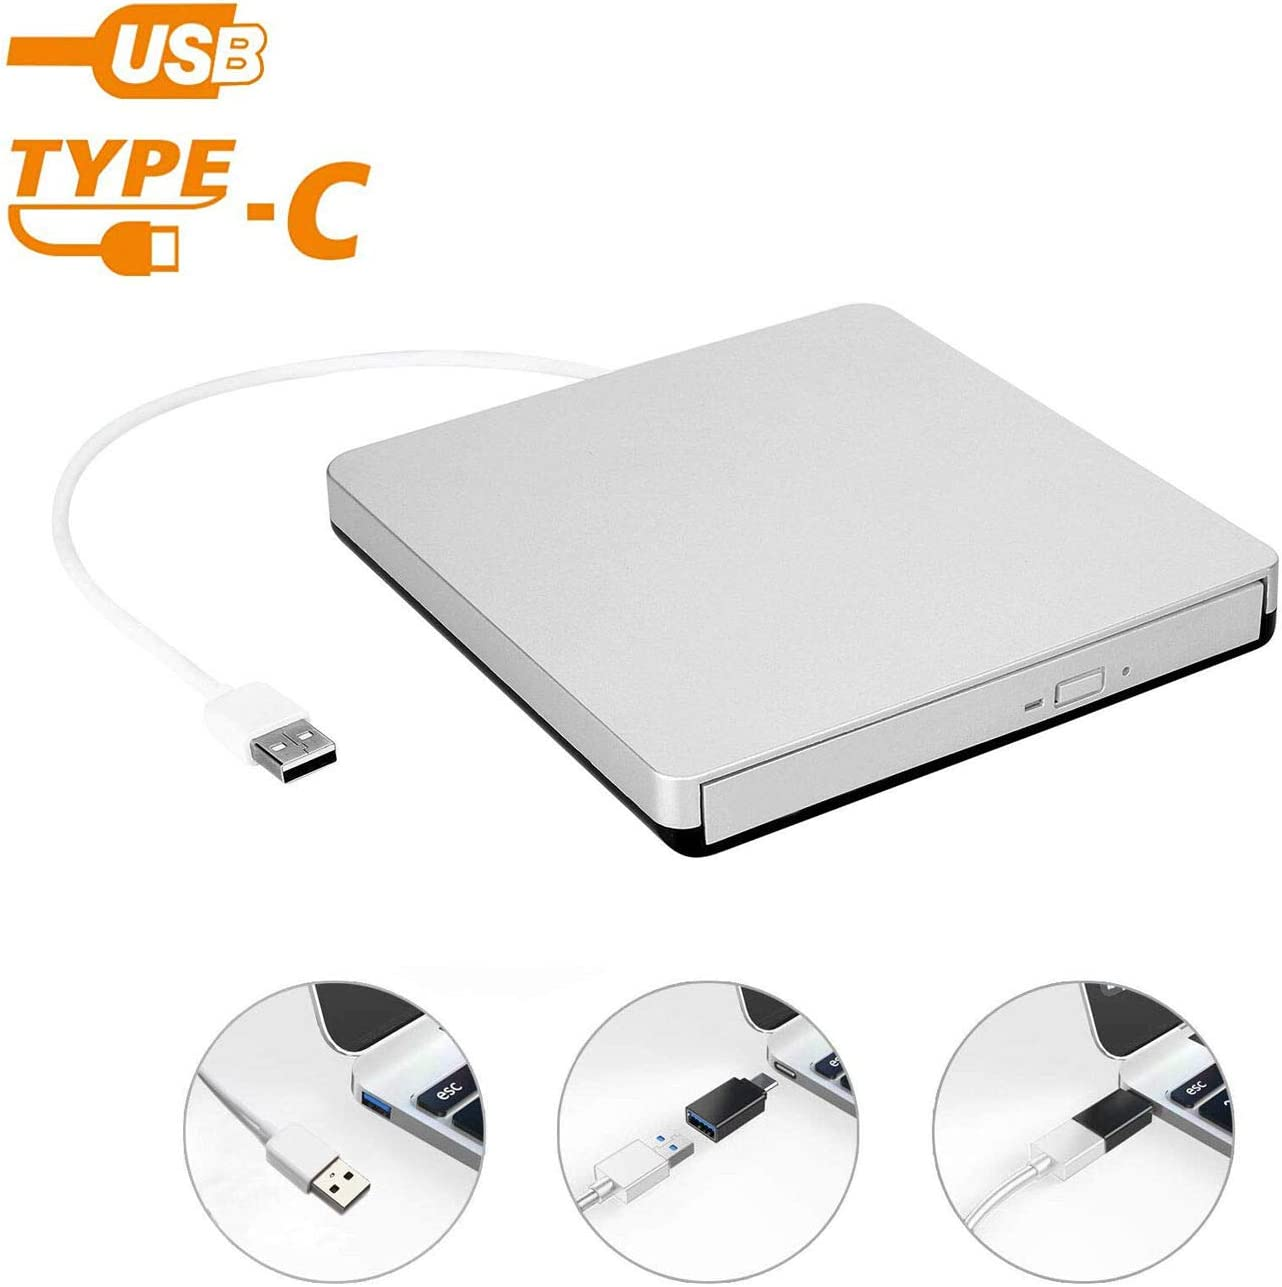 External USB 2.0 DVD Drive, DVD +/-RW CD +/-RW Writer Burner Player with Classic Silvery for MacBook Air, MacBook Pro, Mac OS, PC Laptop